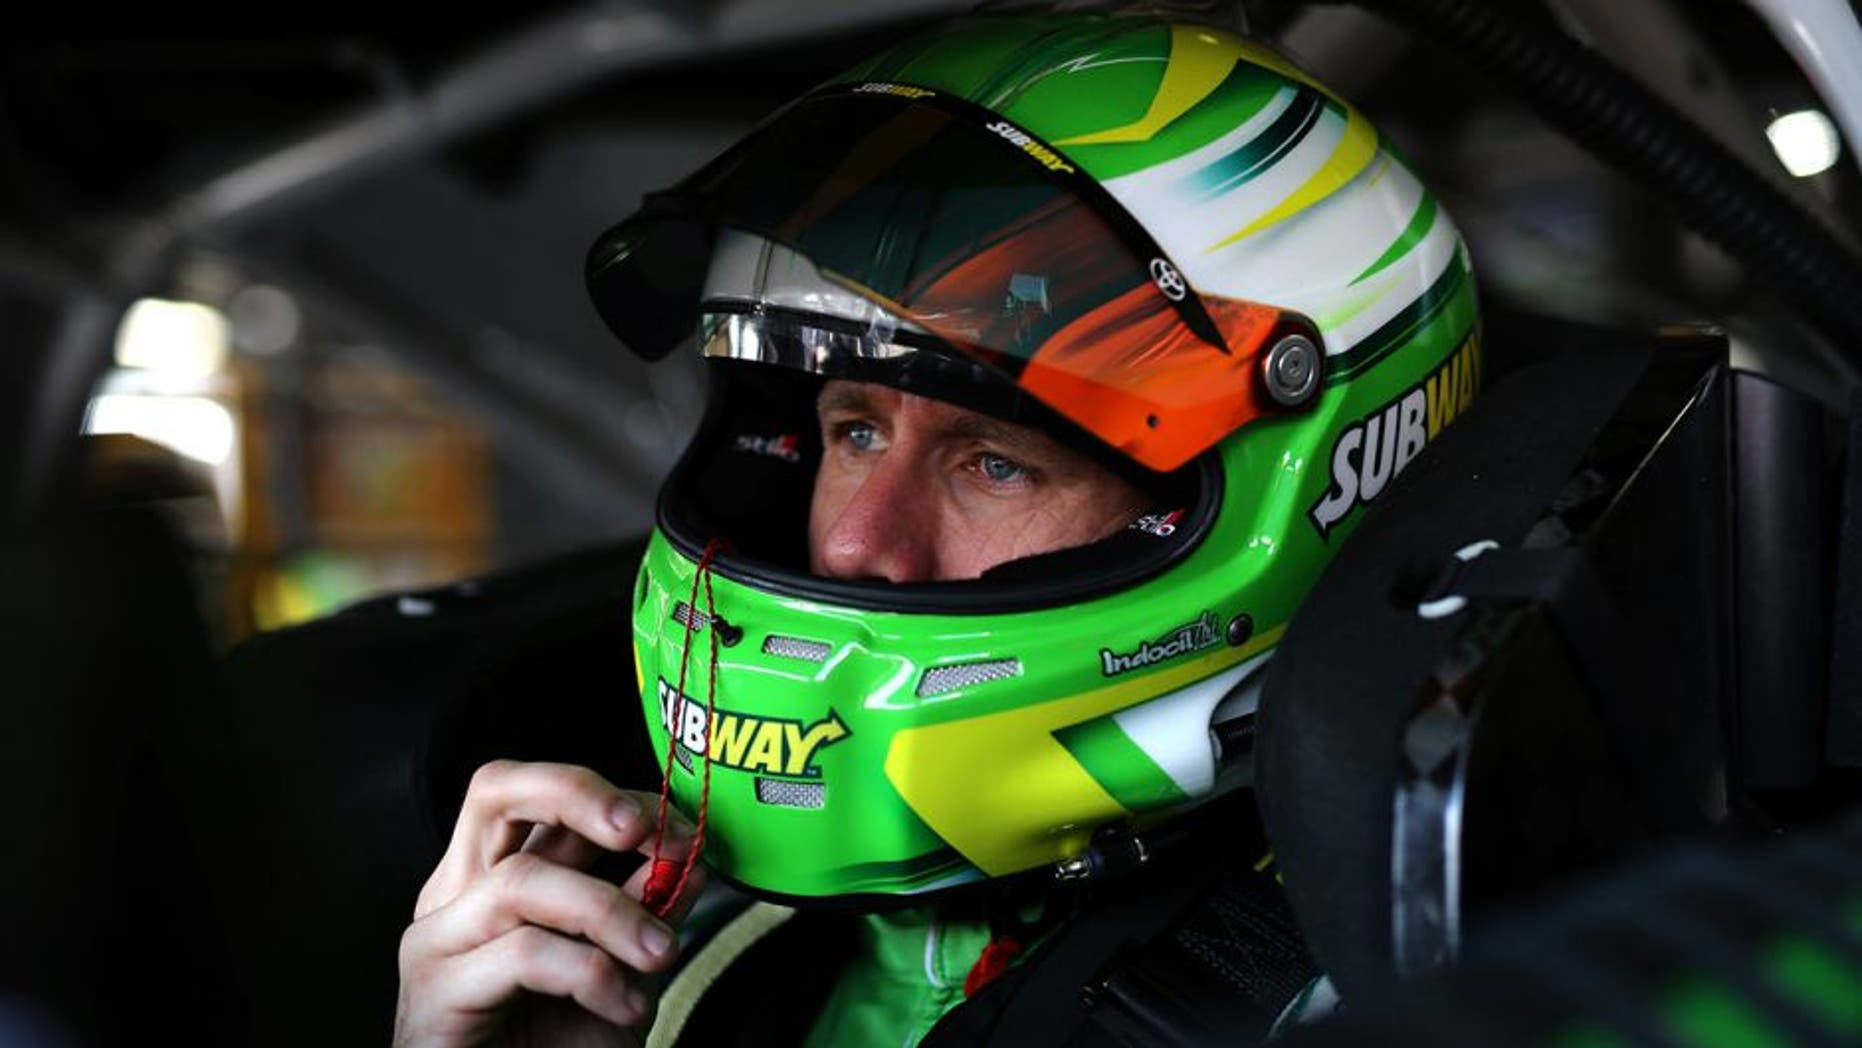 BROOKLYN, MI - JUNE 11: Carl Edwards, driver of the #19 Subway Toyota, sits in his car during practice for the NASCAR Sprint Cup Series FireKeepers Casino 400 at Michigan International Speedway on June 11, 2016 in Brooklyn, Michigan. (Photo by Rey Del Rio/Getty Images )